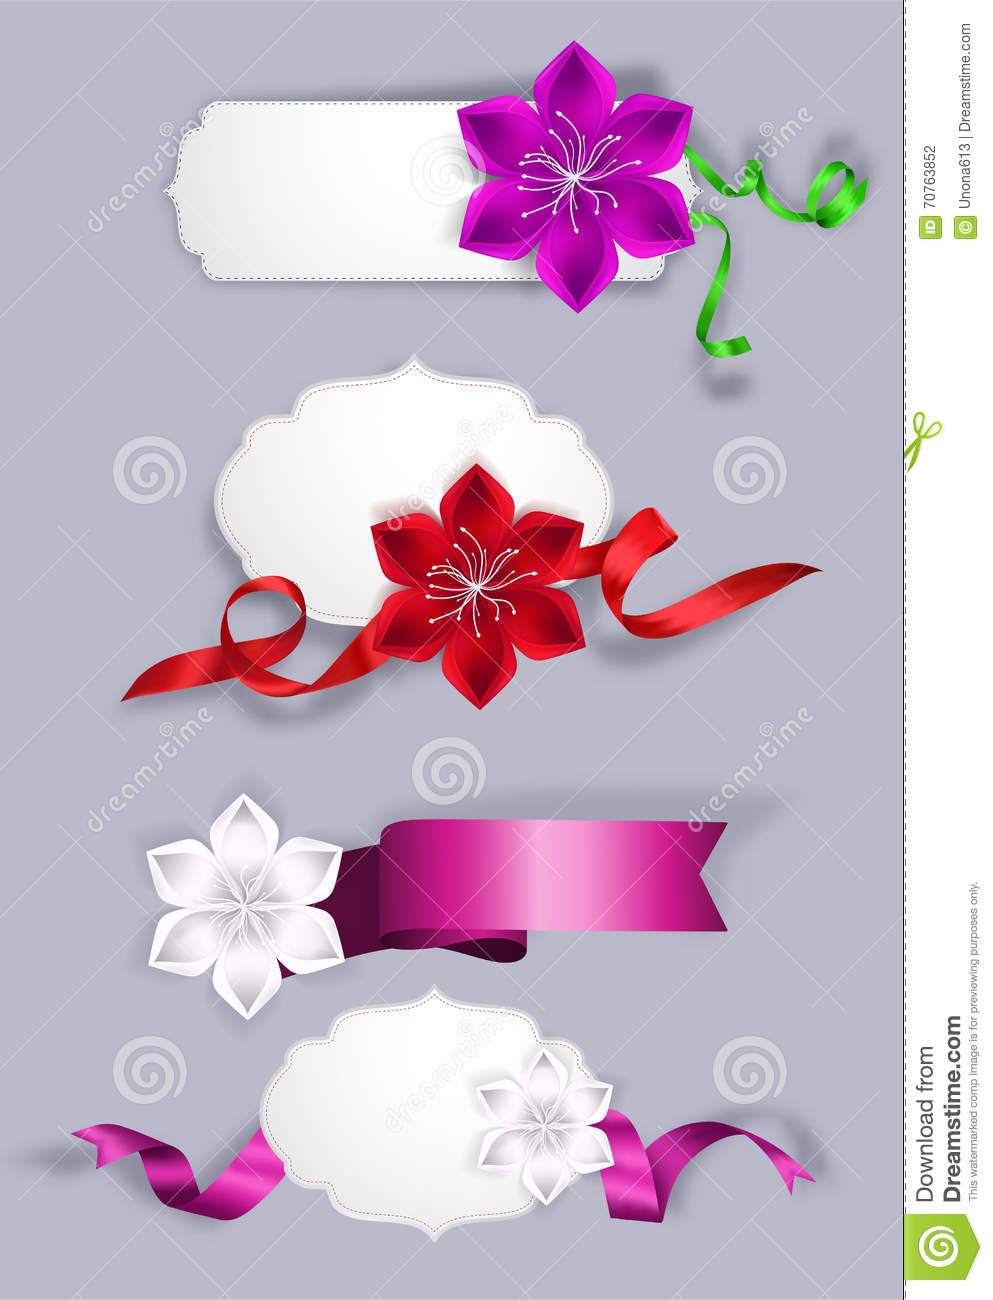 Set Of Elegant Greeting Cards With Silk Ribbons And Flowers Stock